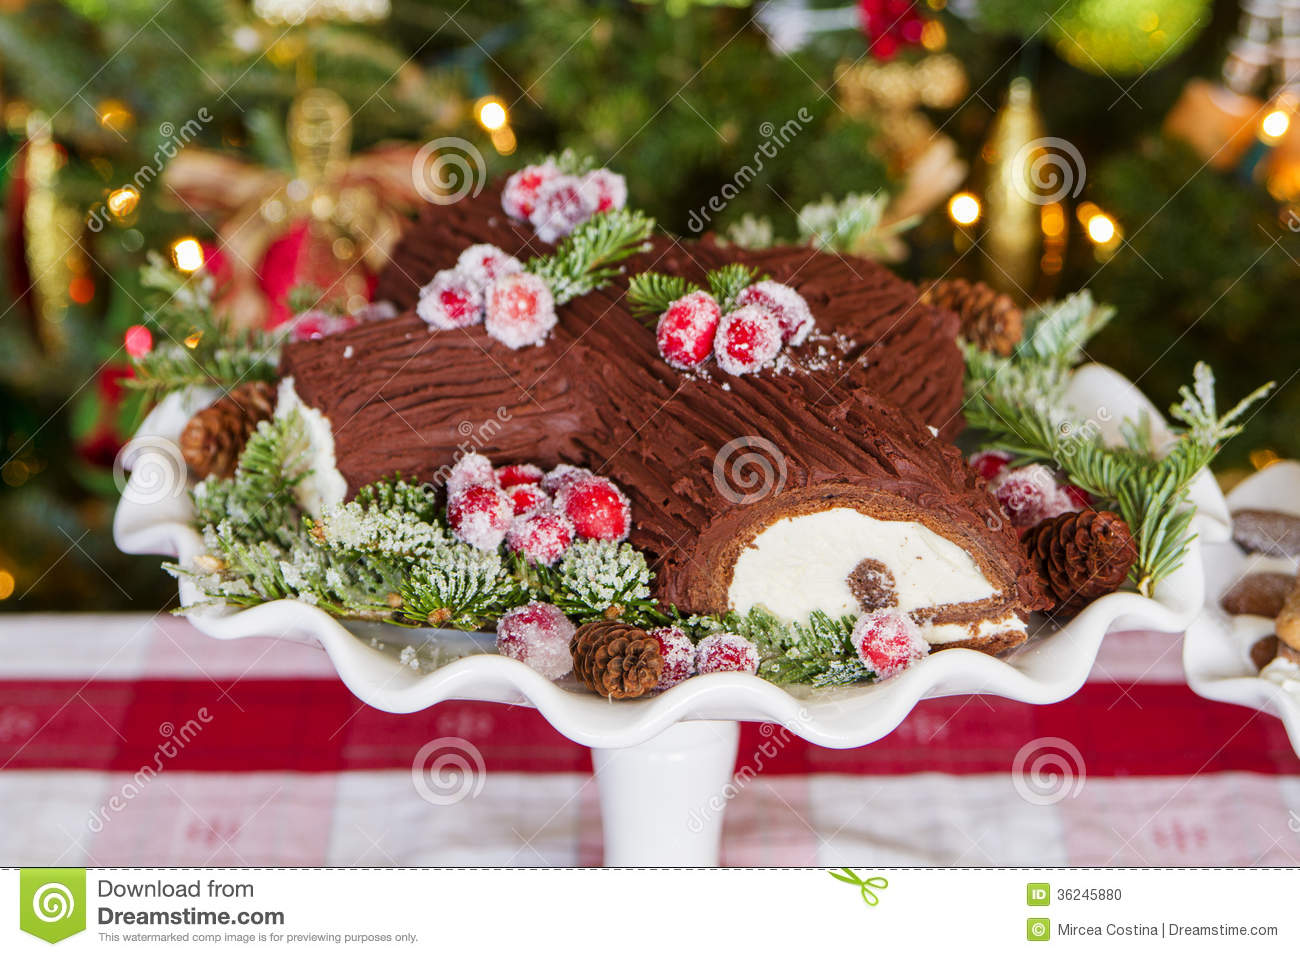 buche de noel cake stock photo image of display hungry. Black Bedroom Furniture Sets. Home Design Ideas